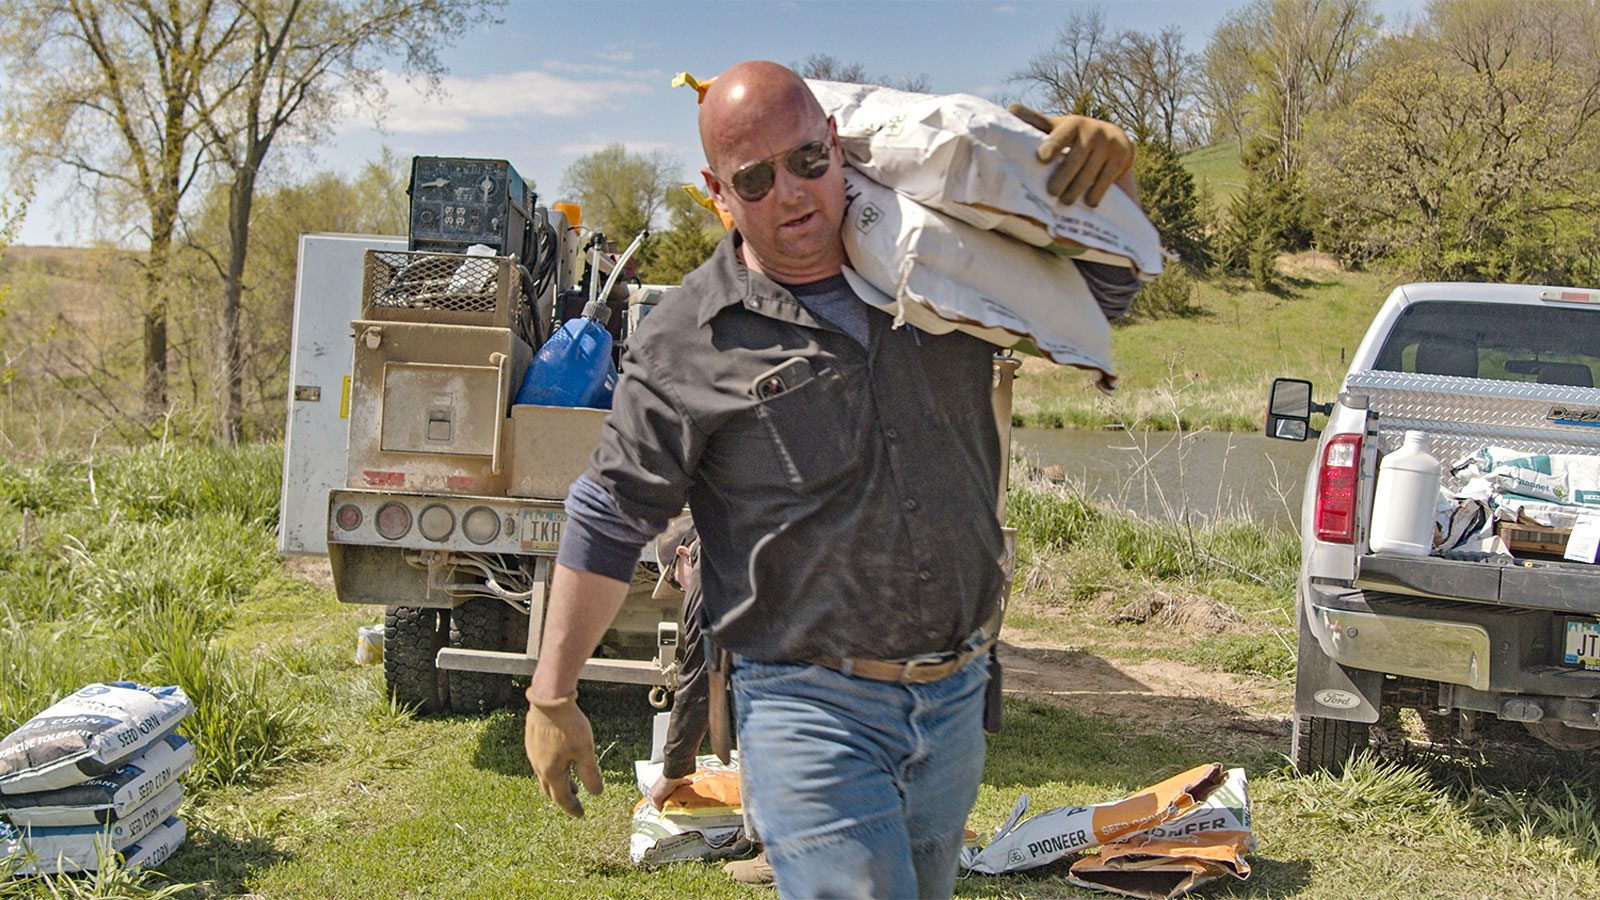 a man on a farm carries a large white sack over his shoulder